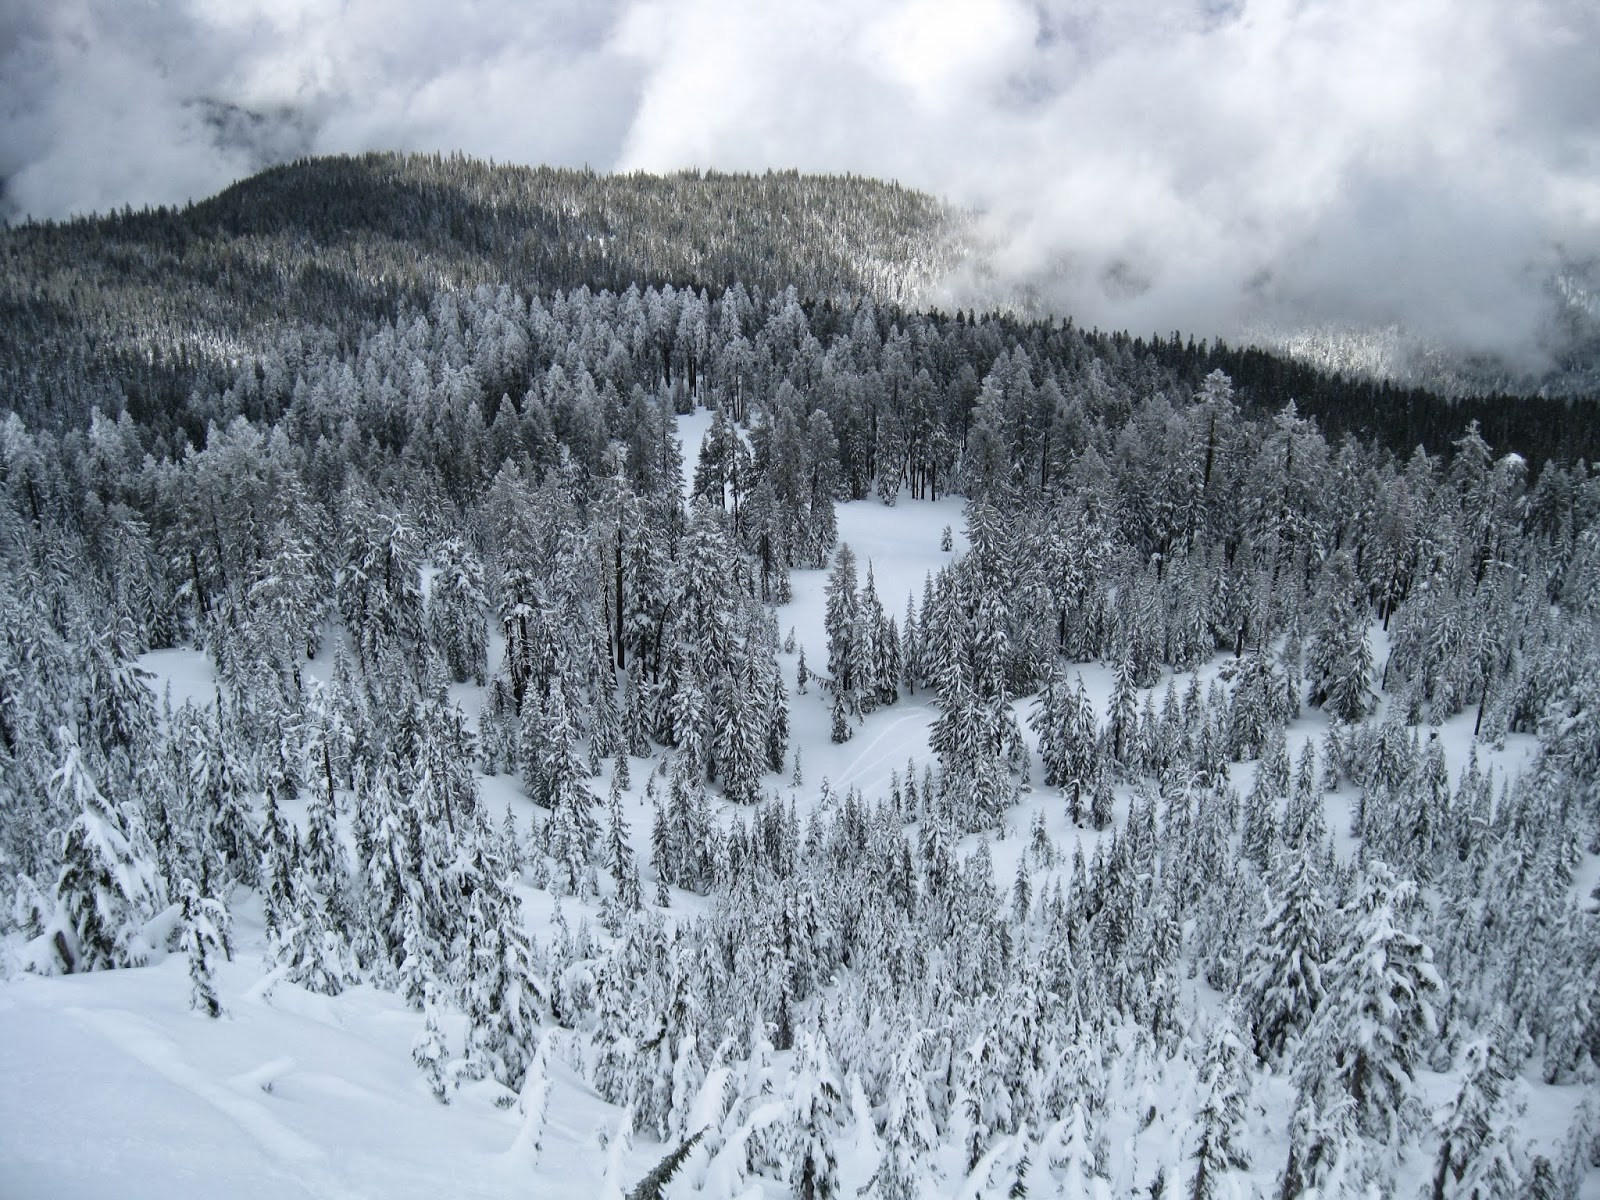 Alpine ski resorts plagued by lack of snow - A View Into The Proposed Mt Ashland Ski Expansion Area In The Winter Of 2011 The Lack Of A Deep Snow Pack This Season Has Brought The Ski Resort To The